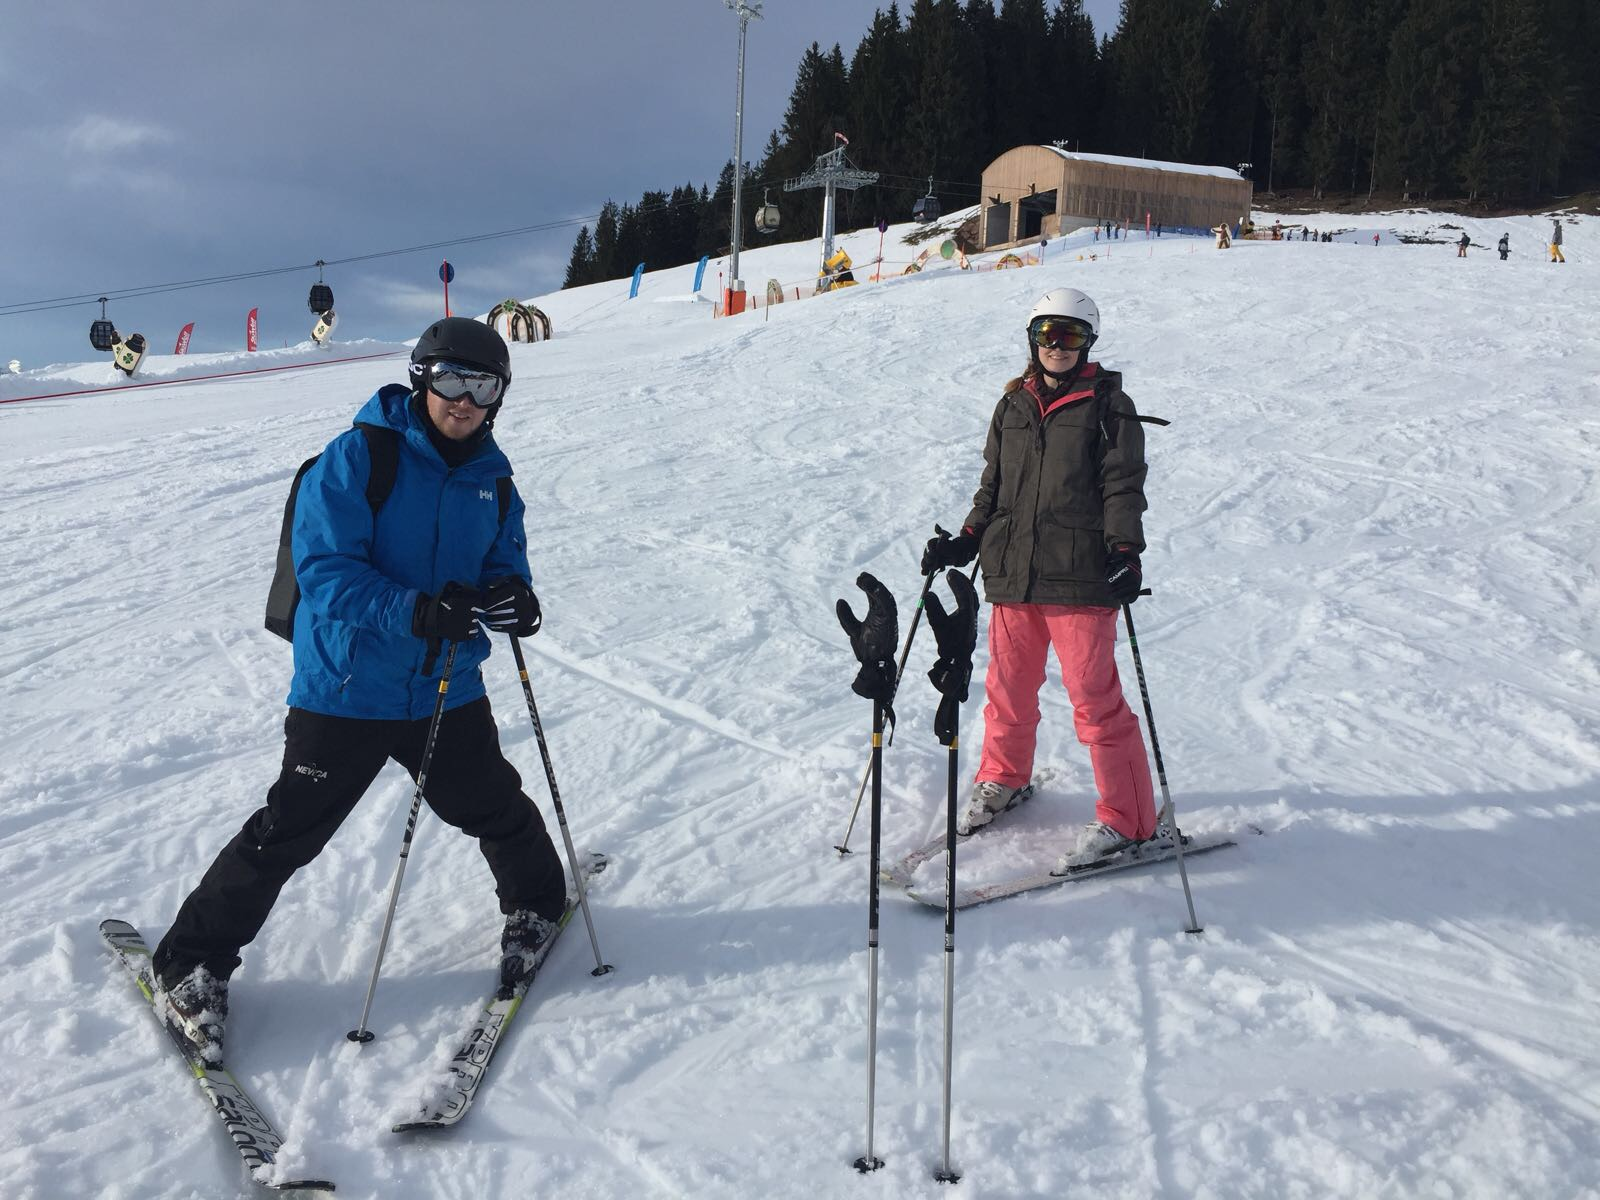 Skiing down a beginner slope in Austria